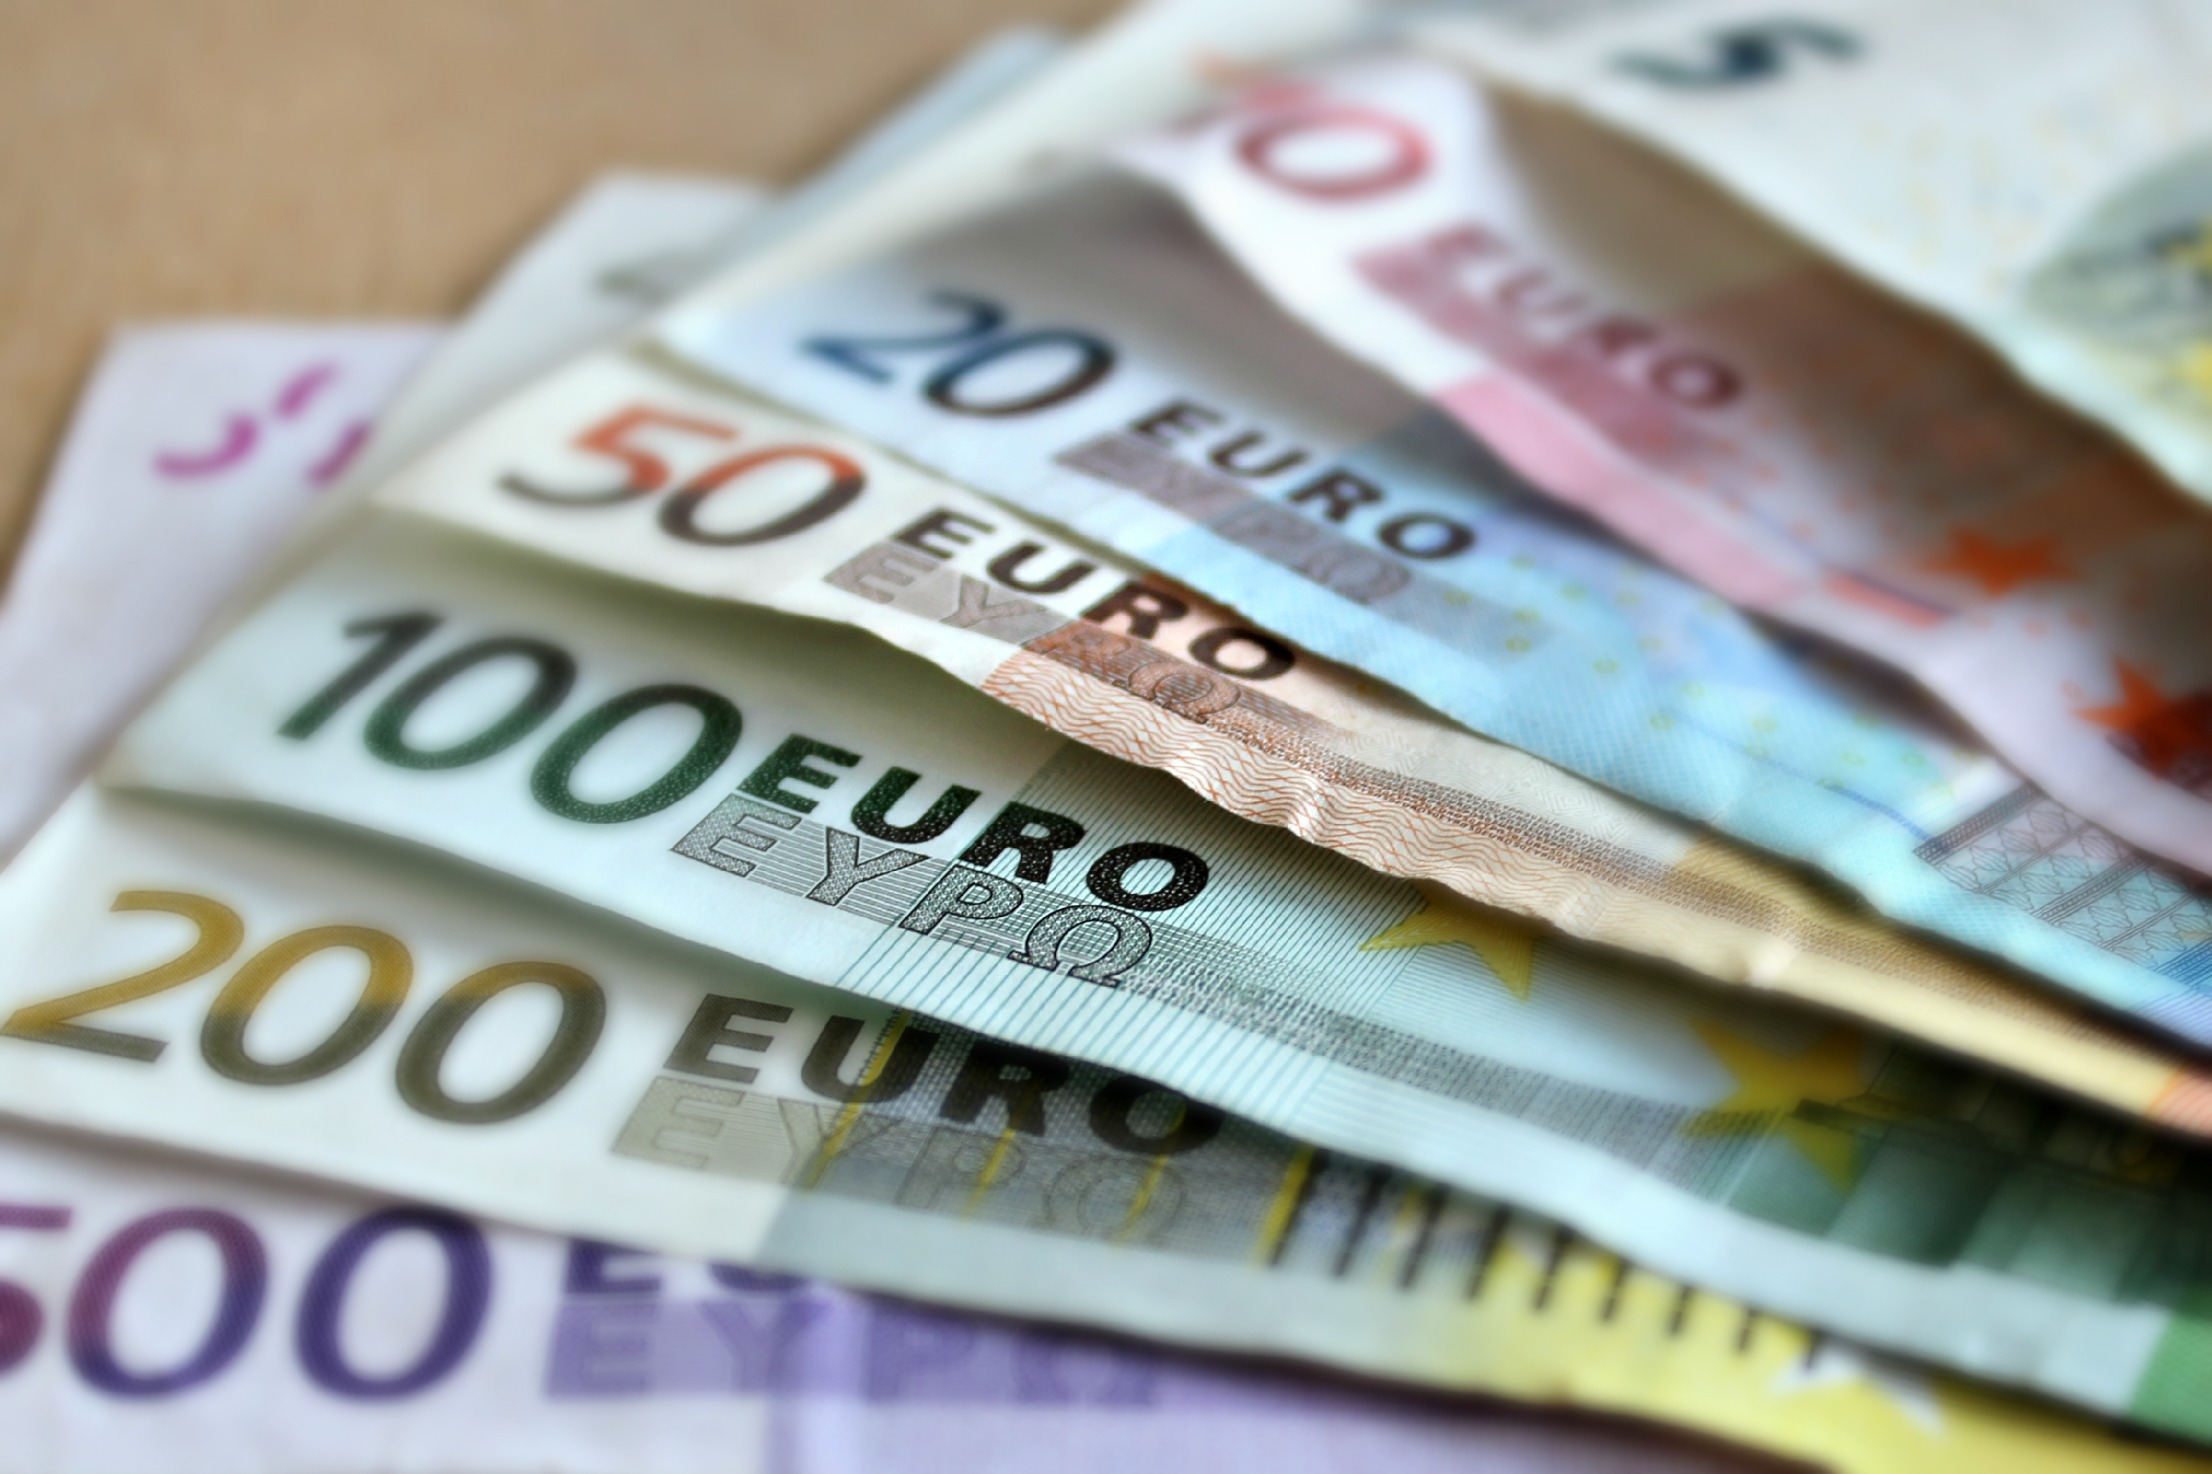 Cryptocurrencies for Euros